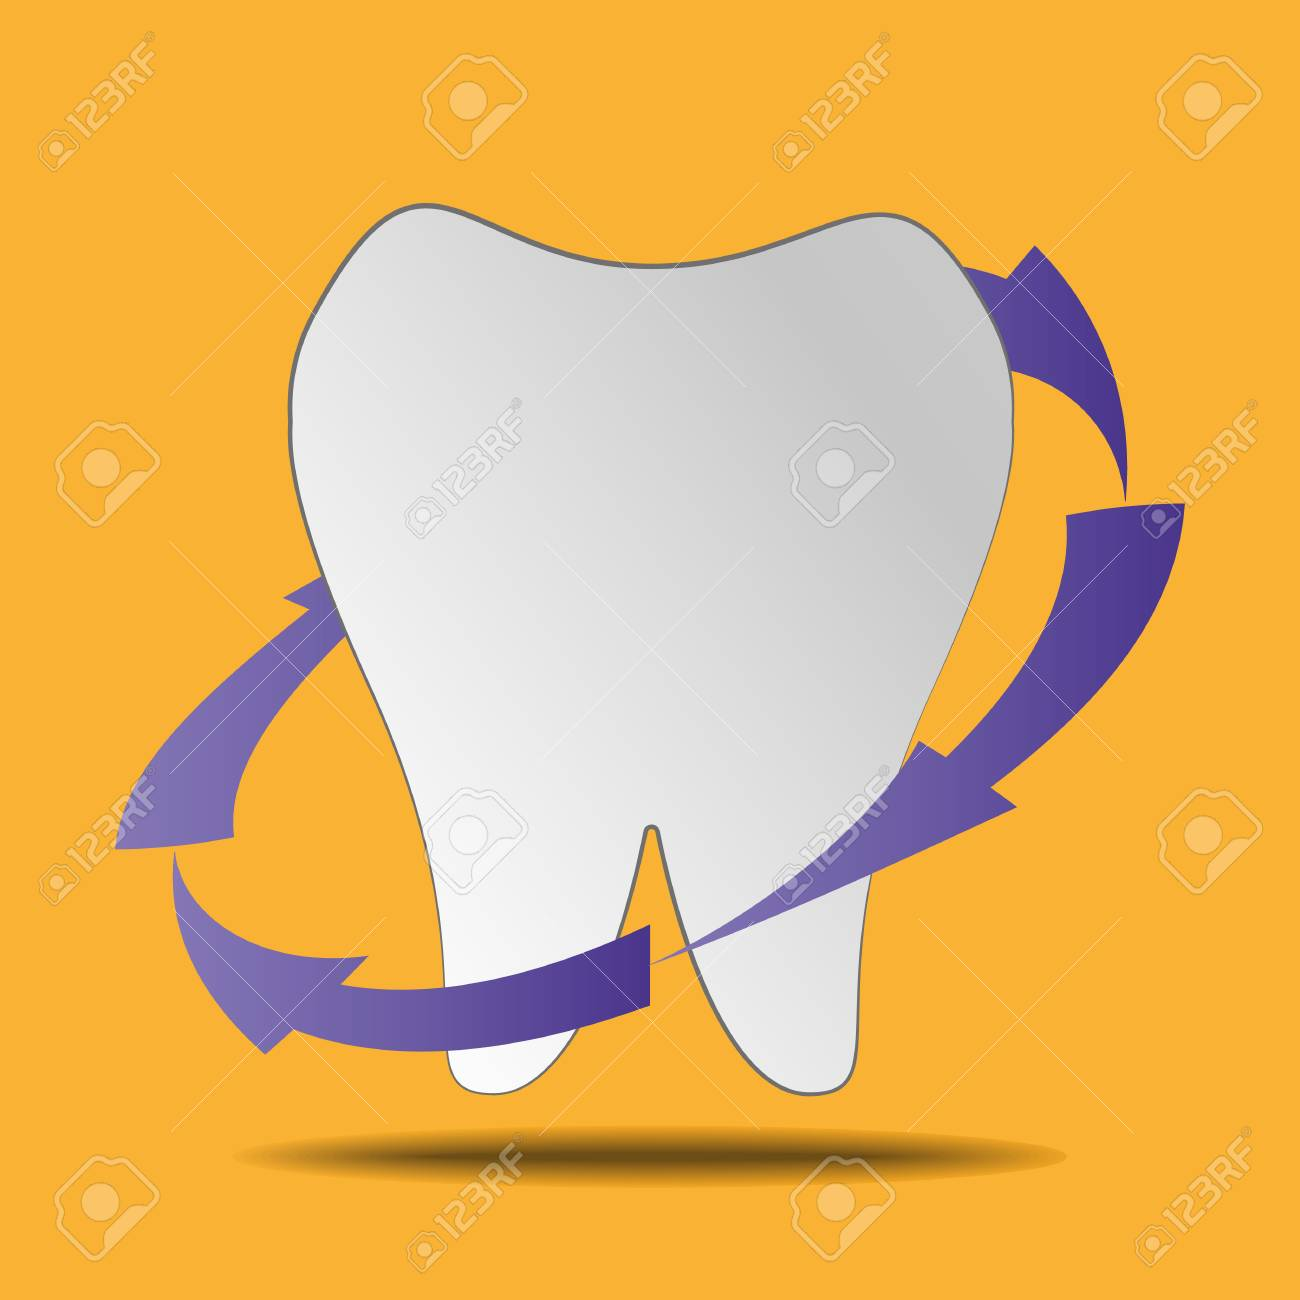 Clean white tooth on a yellow background - 83389120